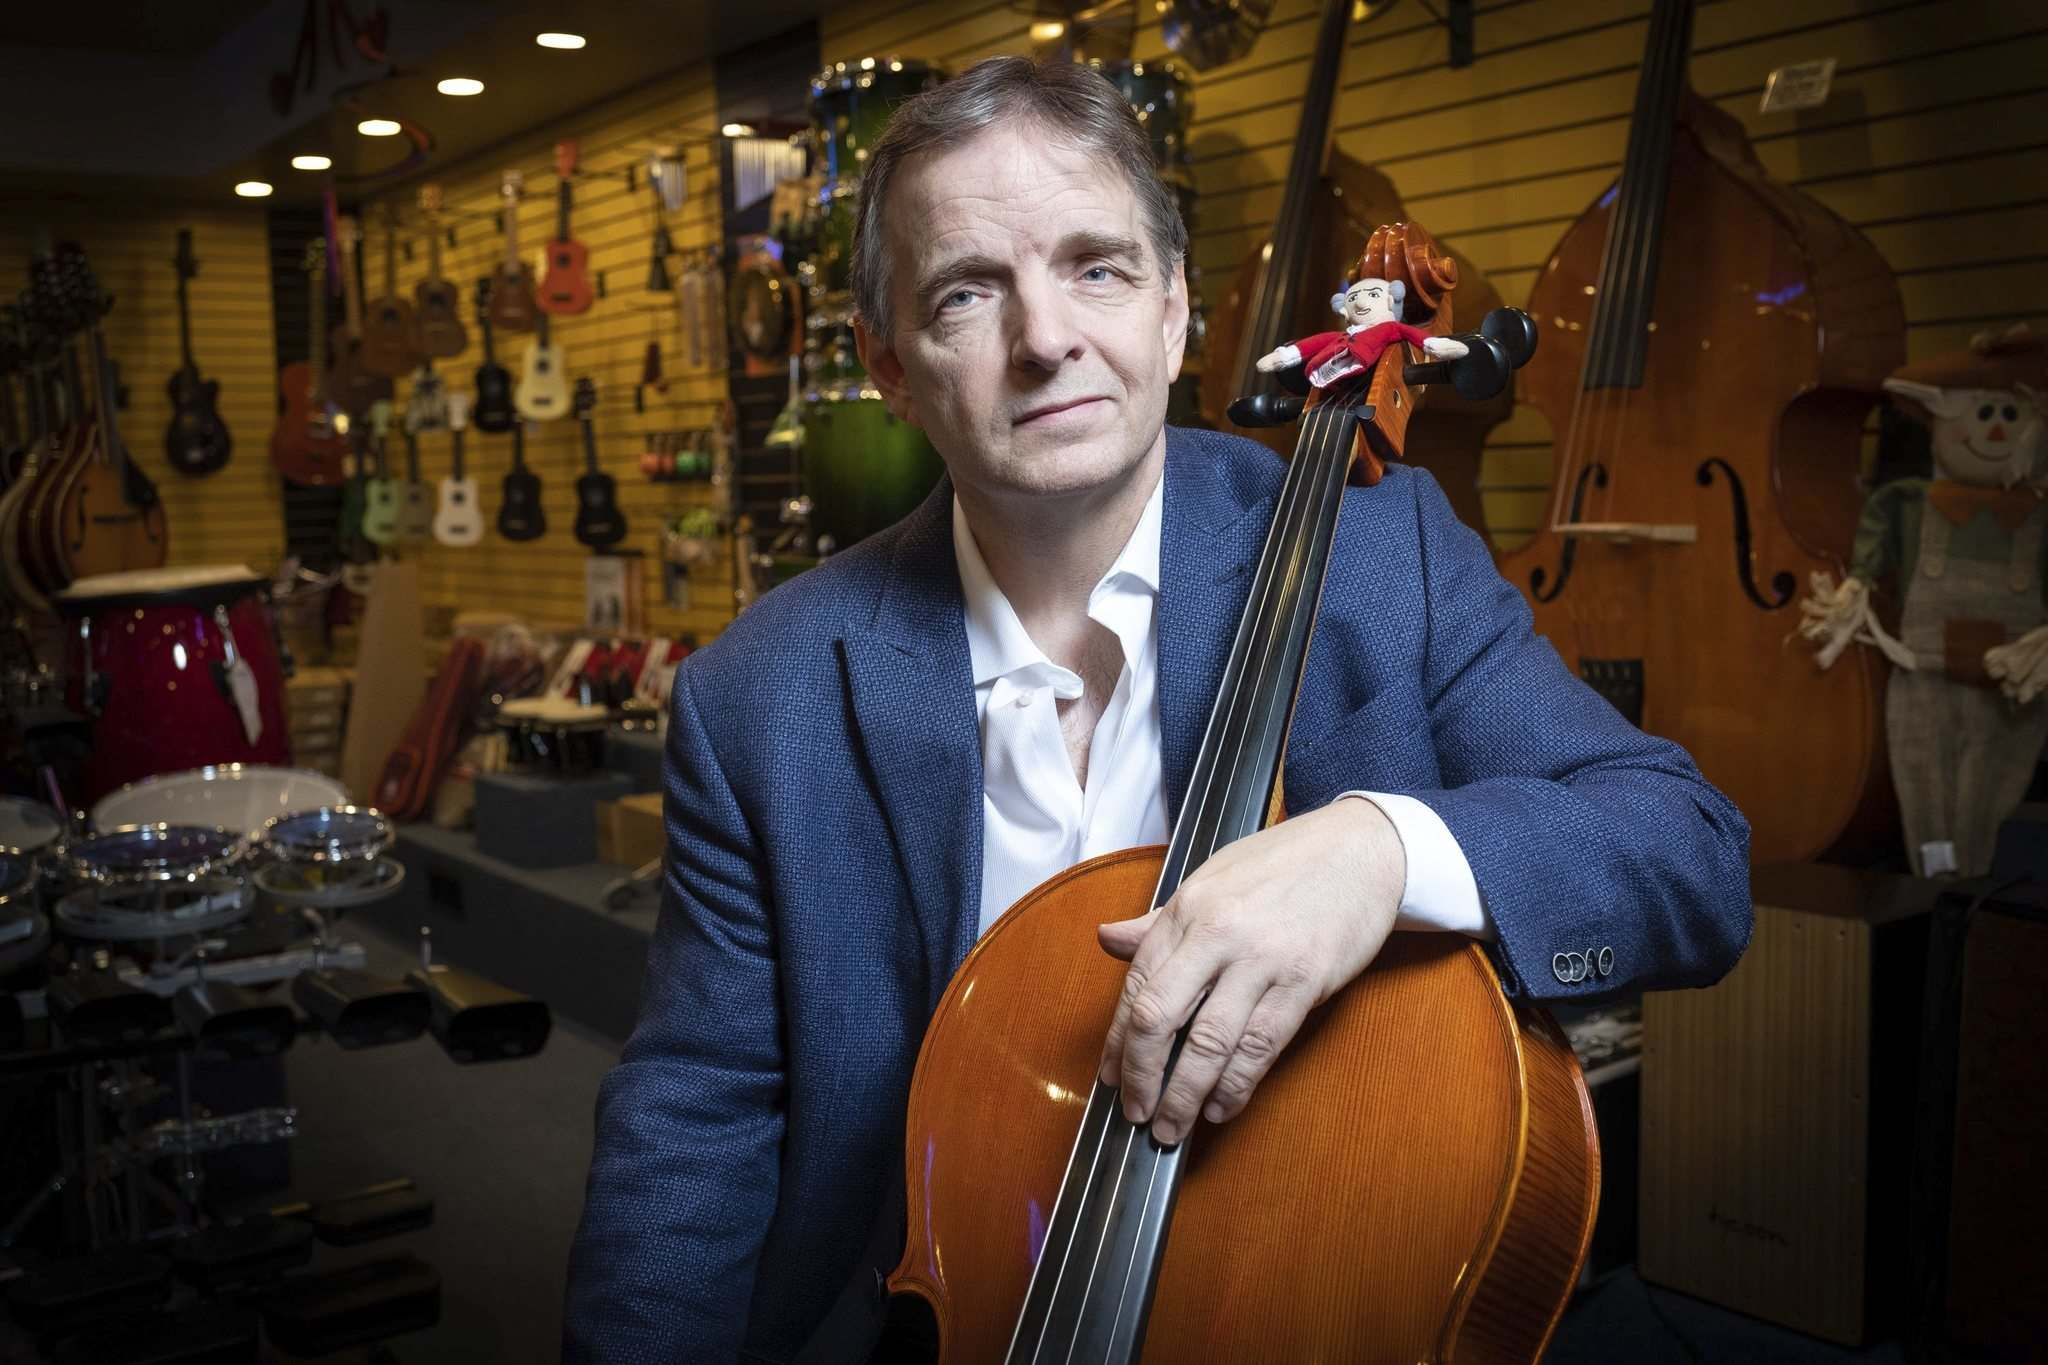 Spirited Music owner Robert Geurts was given two $5,000 fines despite being told he could be open. (Daniel Crump / Winnipeg Free Press files)